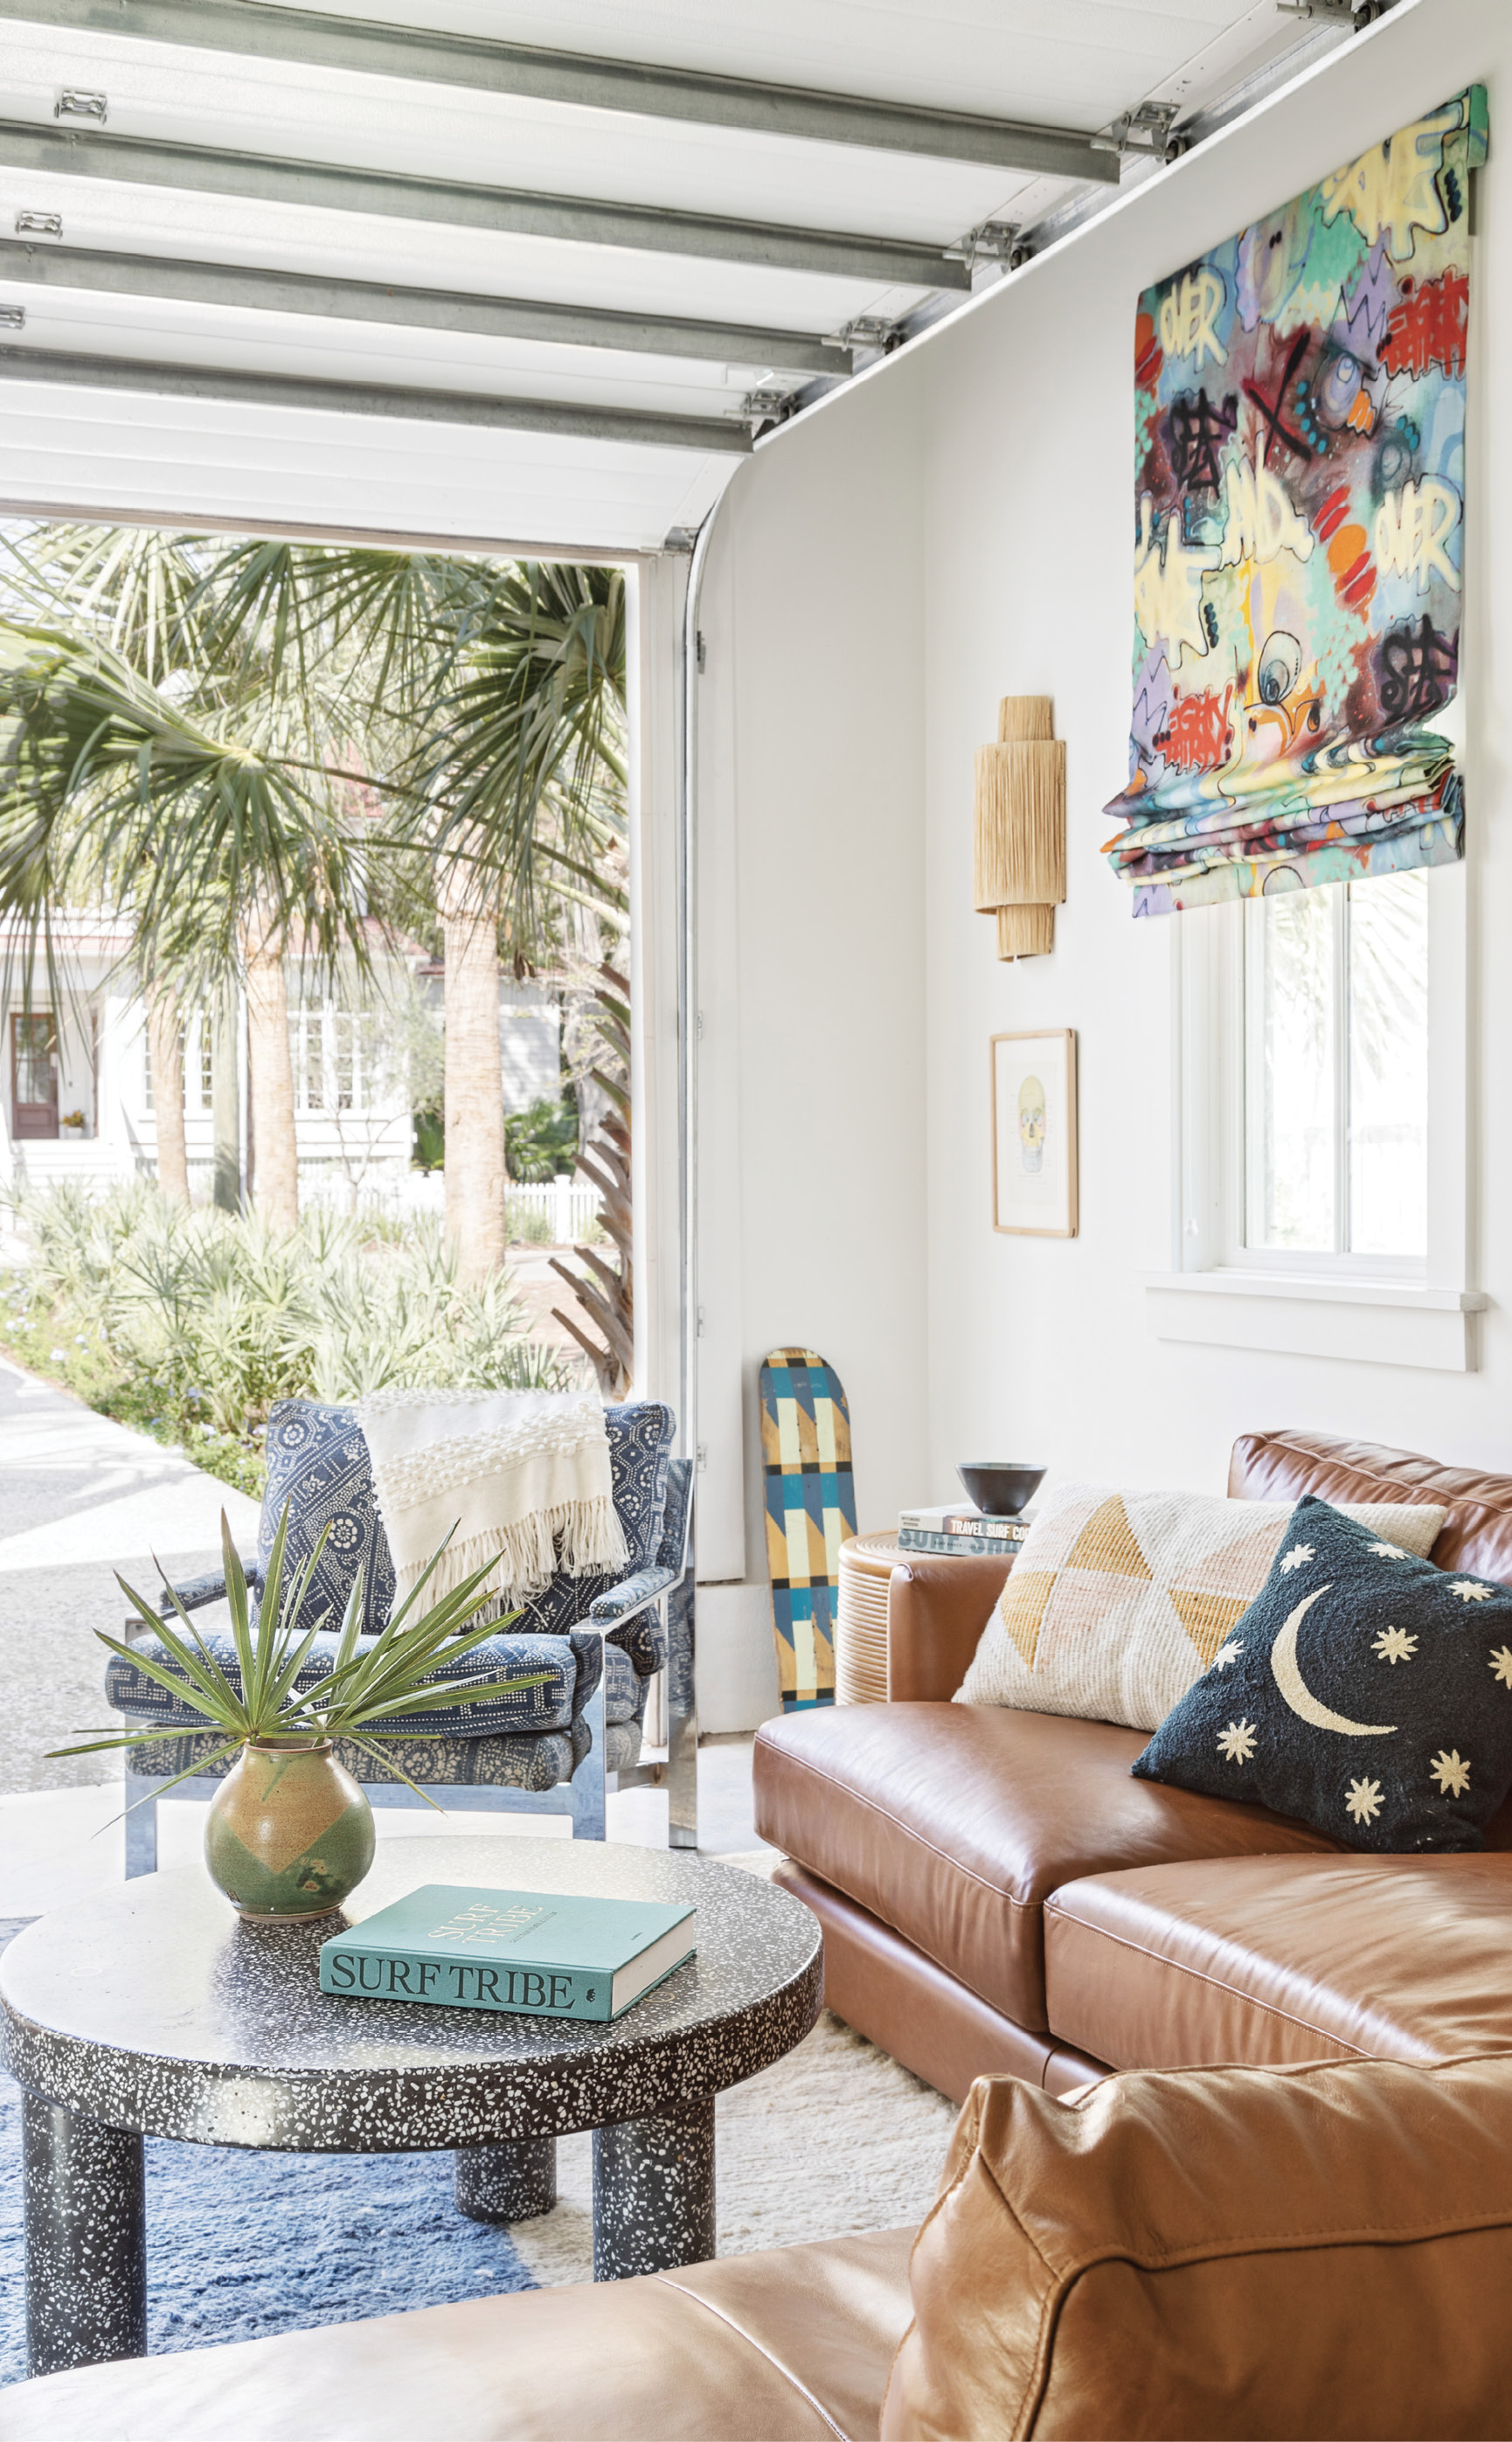 Teen Scene: Stone and leather (in the form of a terrazzo coffee table from Anthropologie and sofa from West Elm) are durable yet great-looking choices for the garage-turned-kids' hang space.